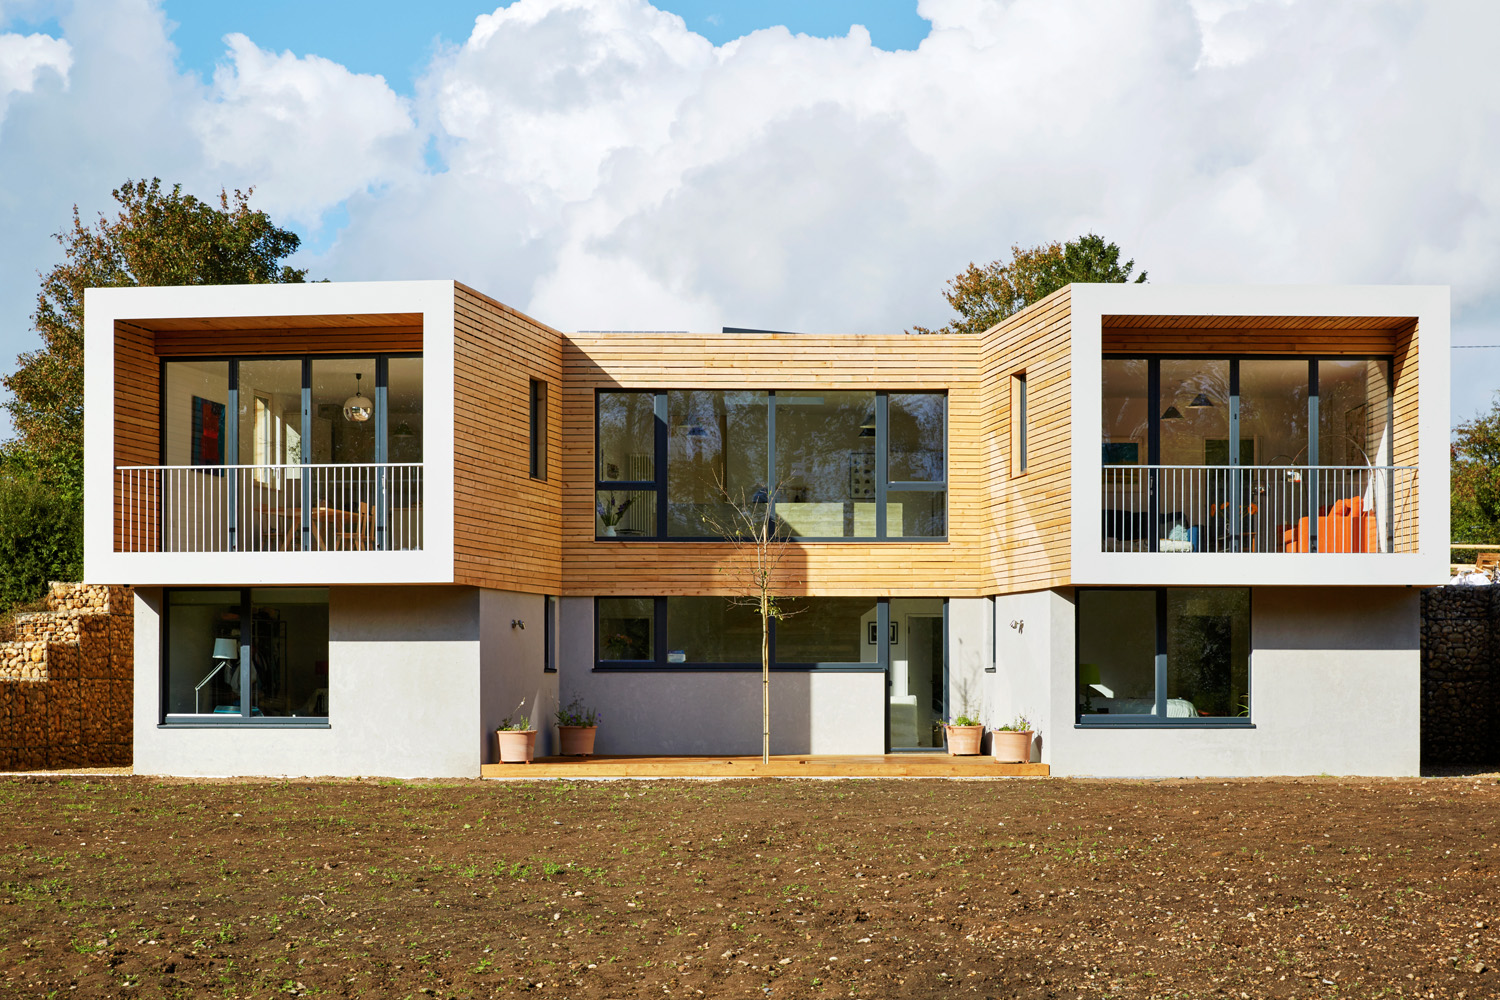 Grand designs uk idyllic and super eco home completehome for Grand home designs